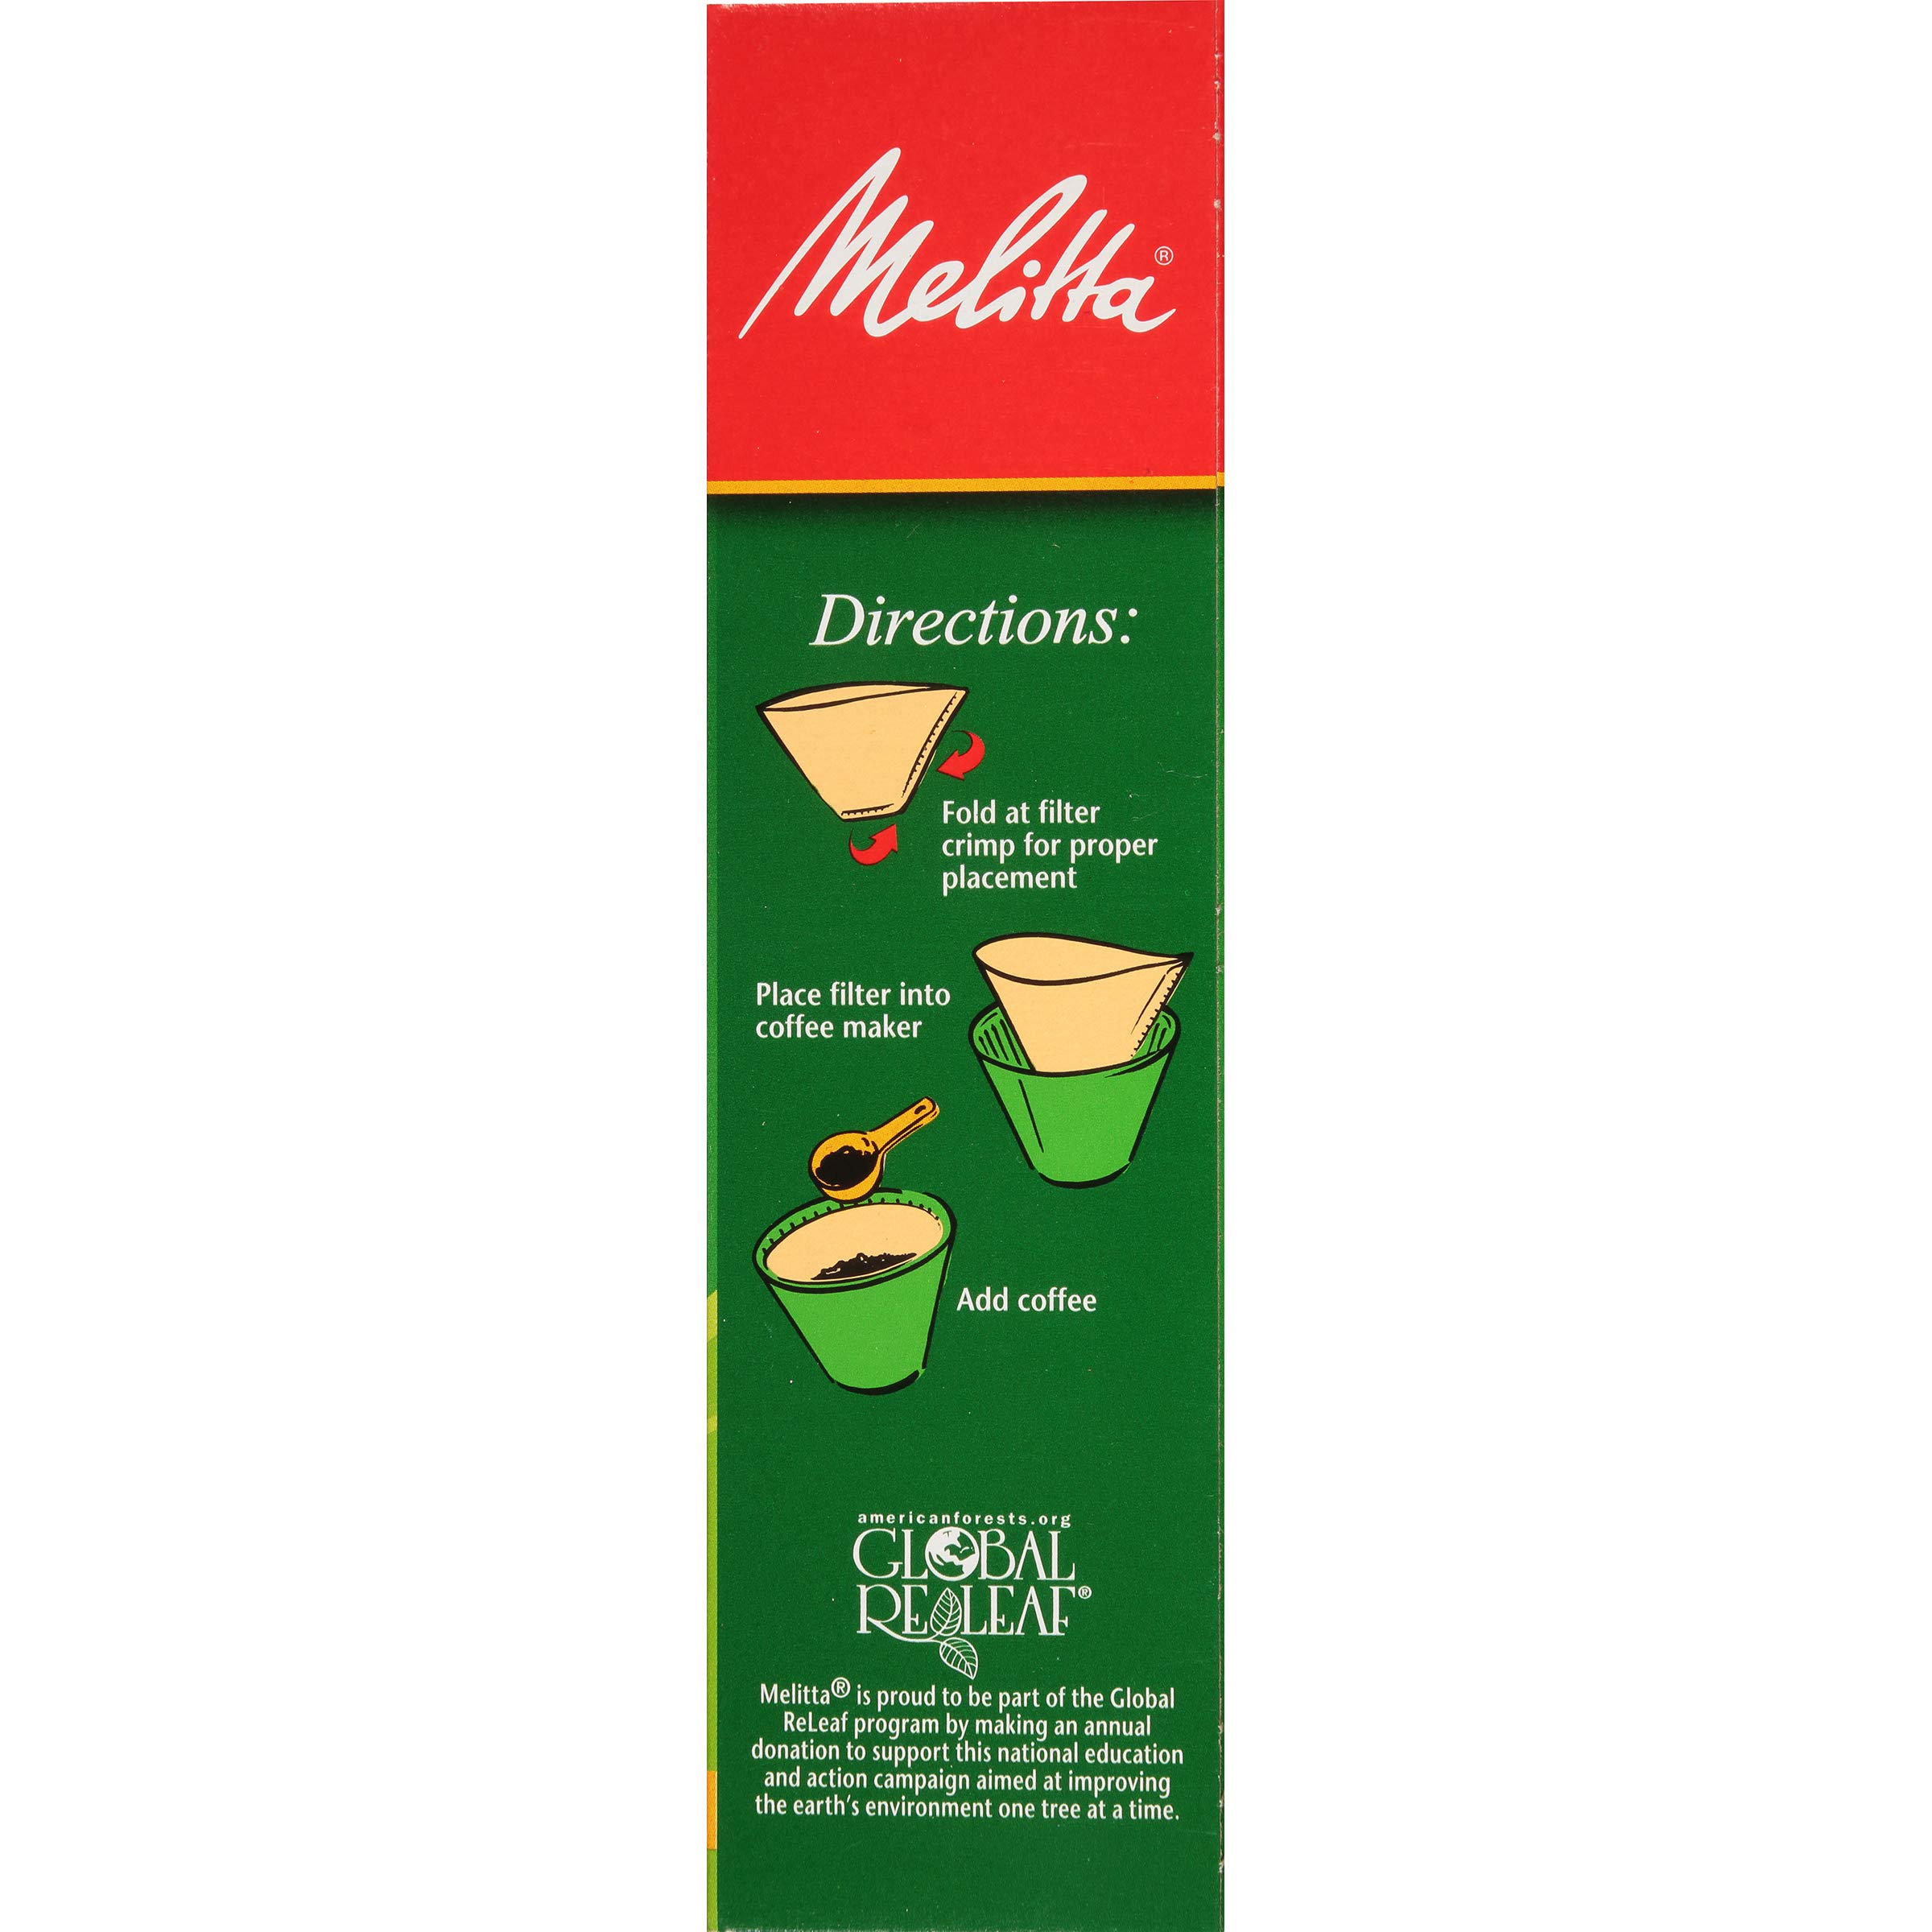 Melitta (62445C) Super Premium No. 4 Cone Coffee Filters, Natural Brown, 100 Count (Pack of 6) by Melitta (Image #5)